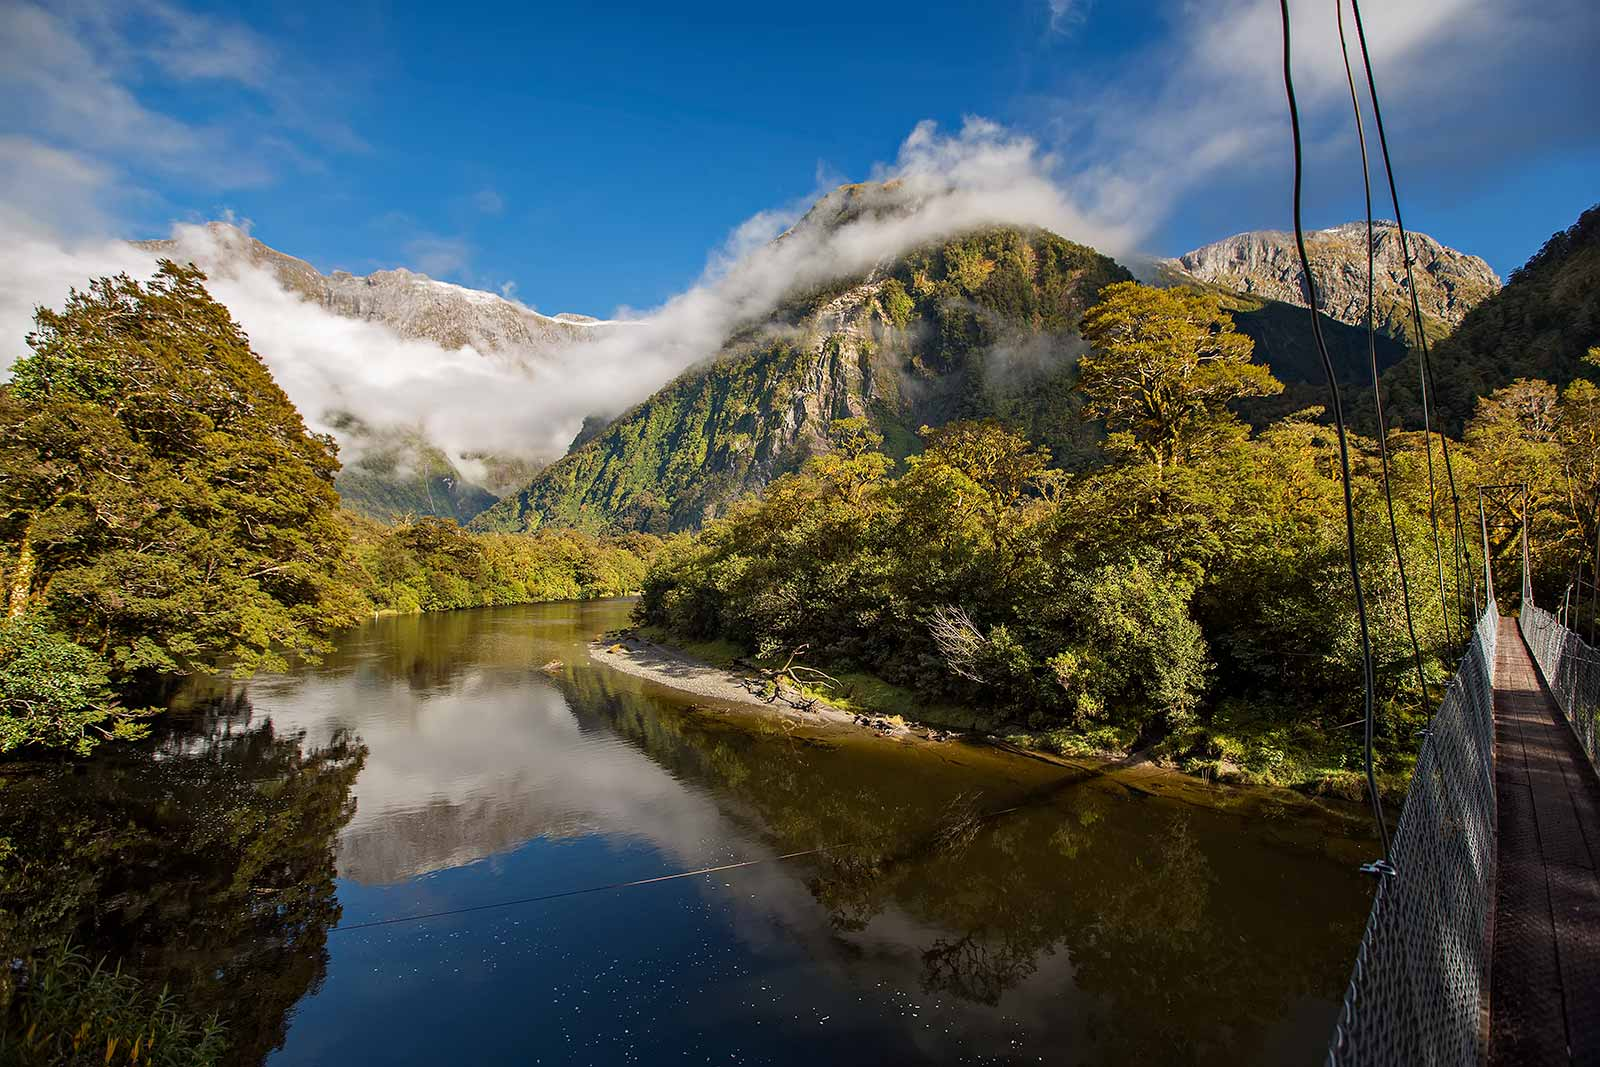 milford-track-new-zealand-4-2